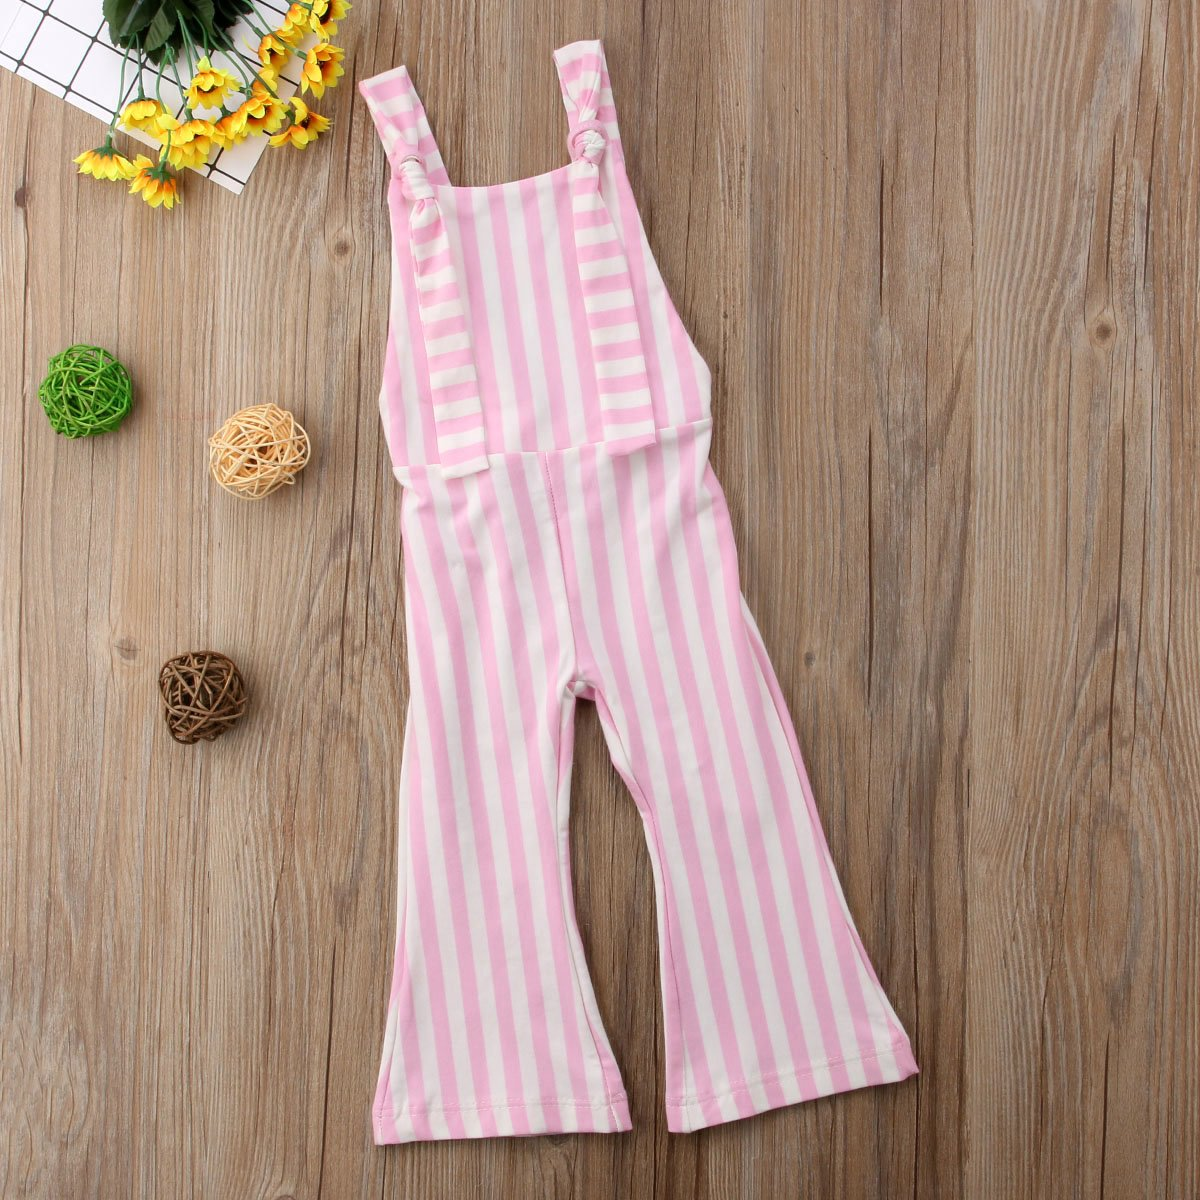 XARAZA Toddler Kids Baby Girl Stripes Bell-Bottom Jumpsuit Romper Overalls Pants Outfits